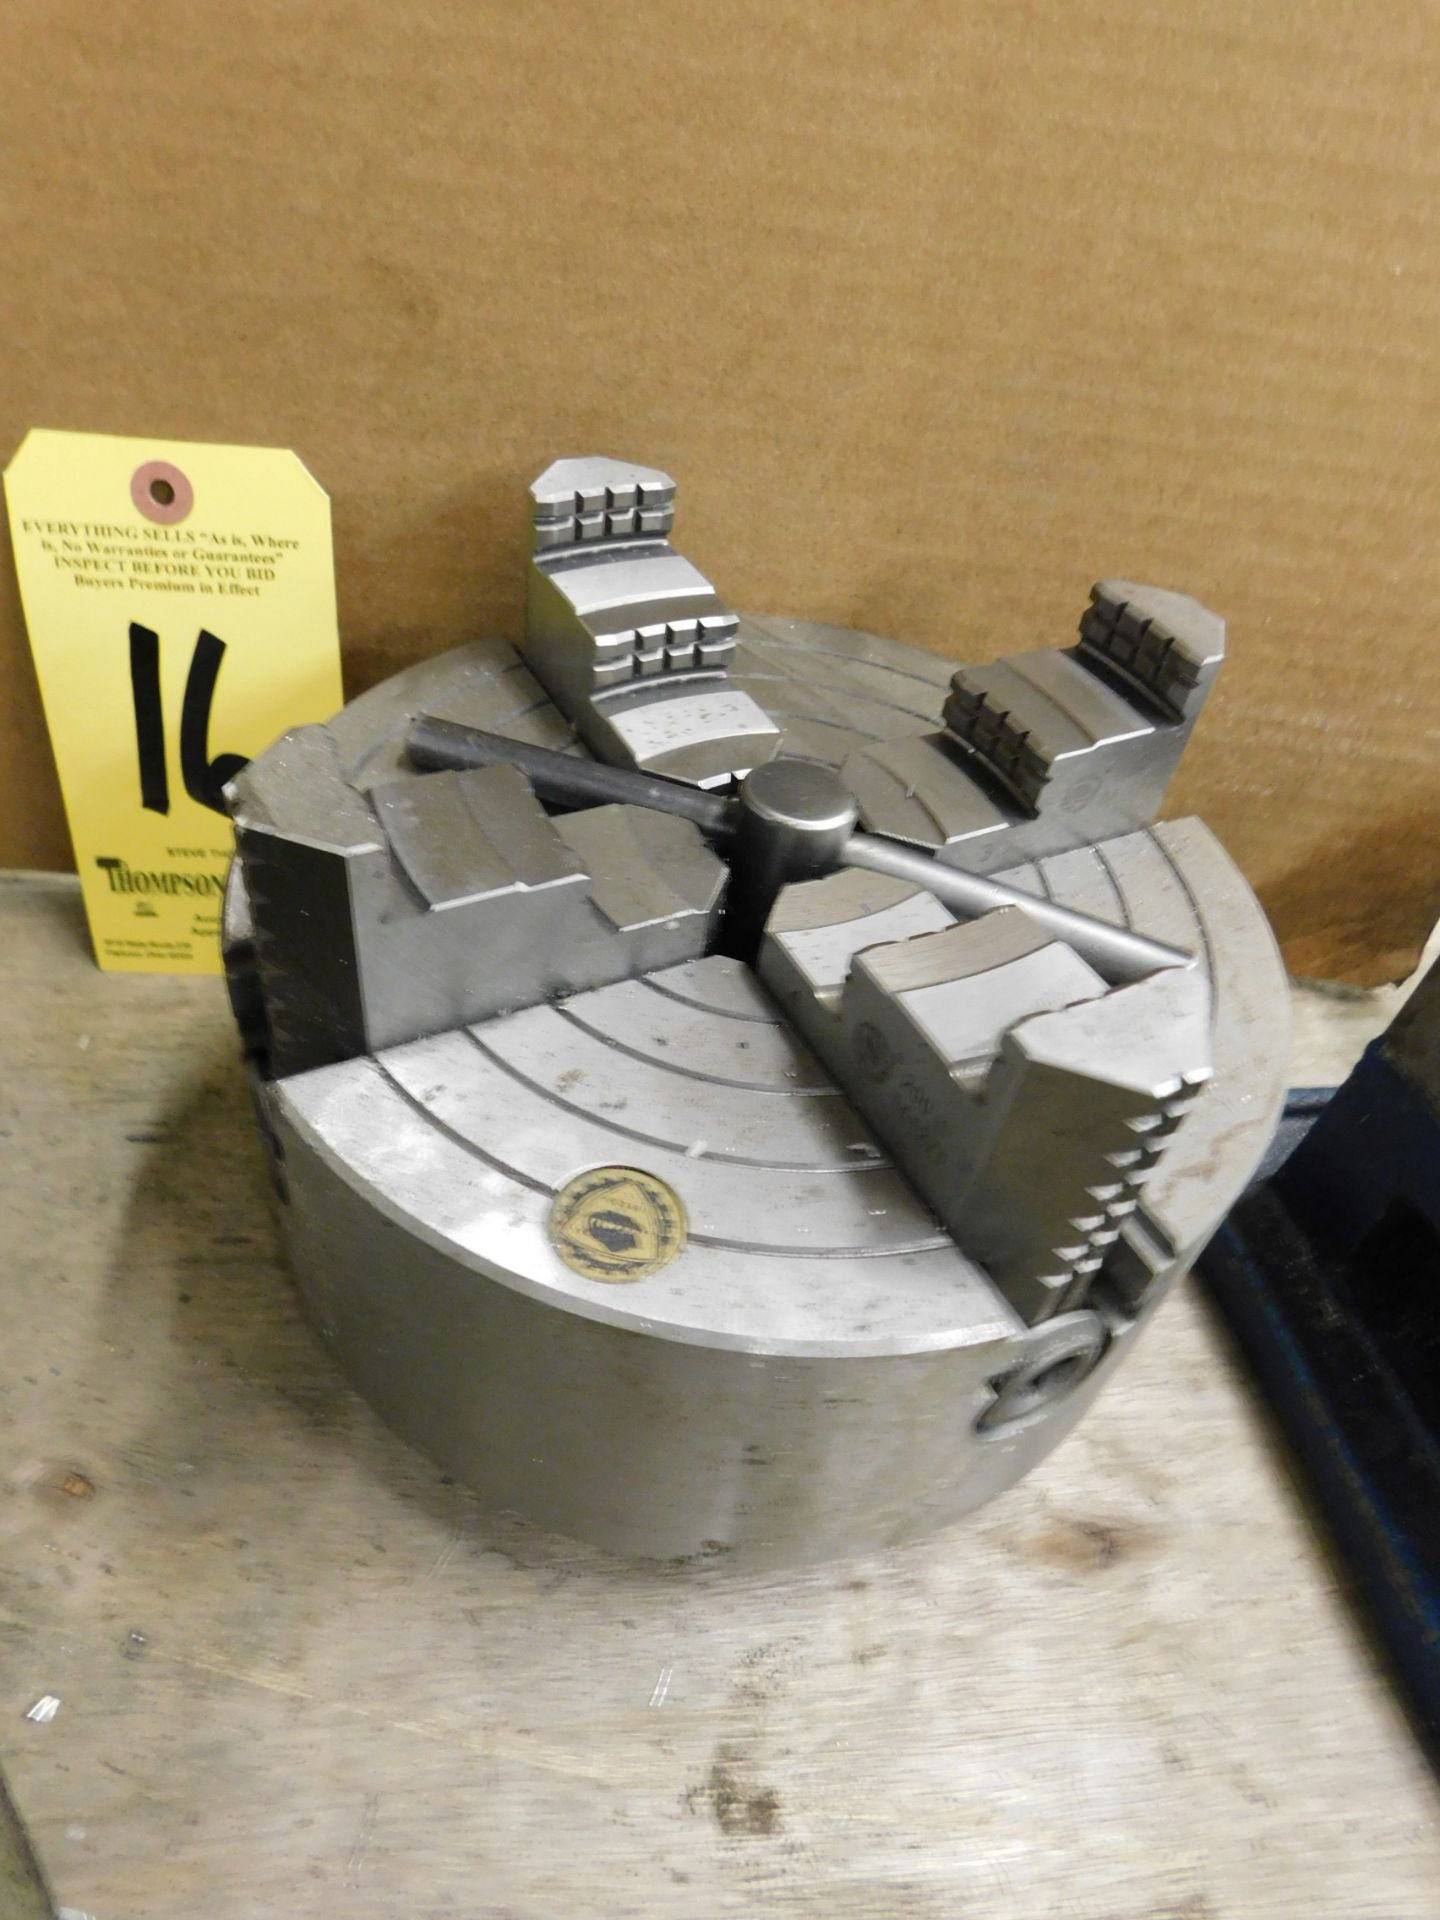 """Lot 16 - 8"""" 4-Jaw Chuck, D1-4 Mount, Lot Location: 301 Poor Dr., Warsaw, IN, 46580"""